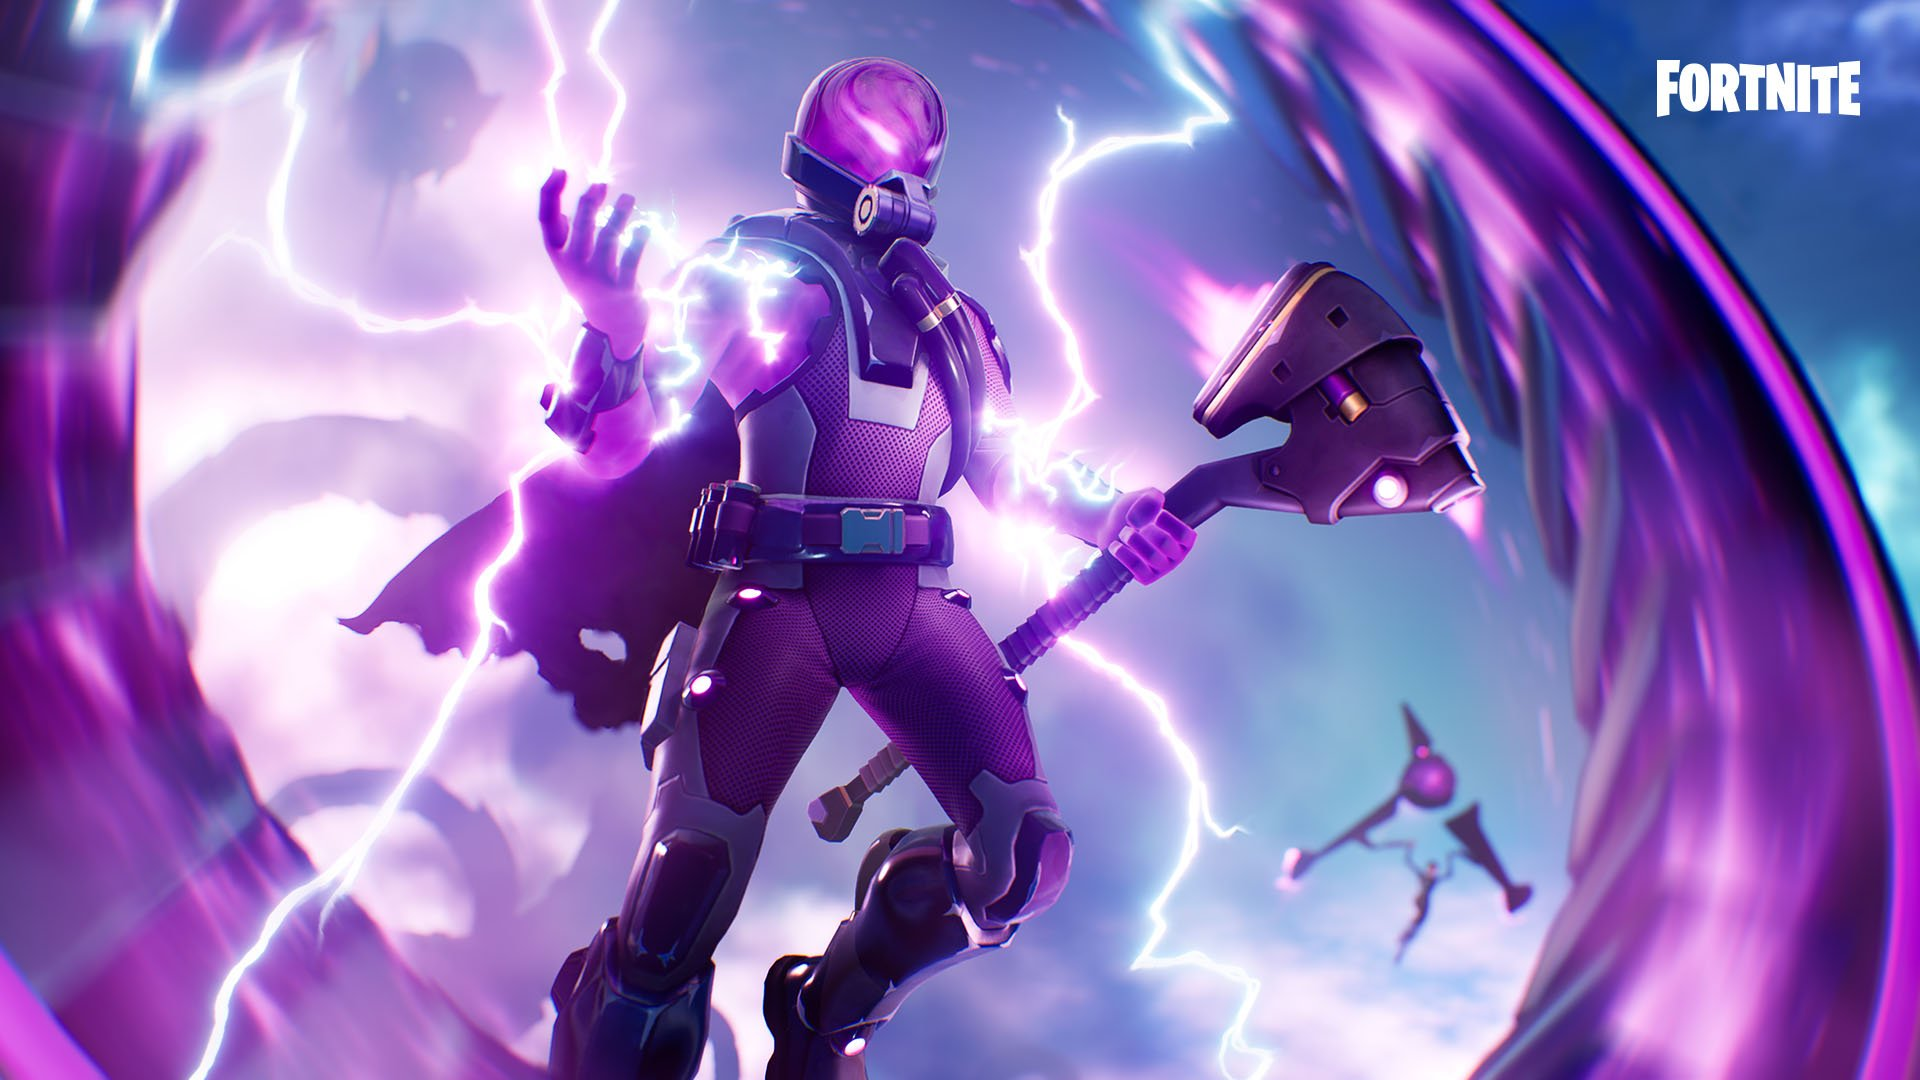 Animated Tempest skin thunders into the Fortnite item shop ...